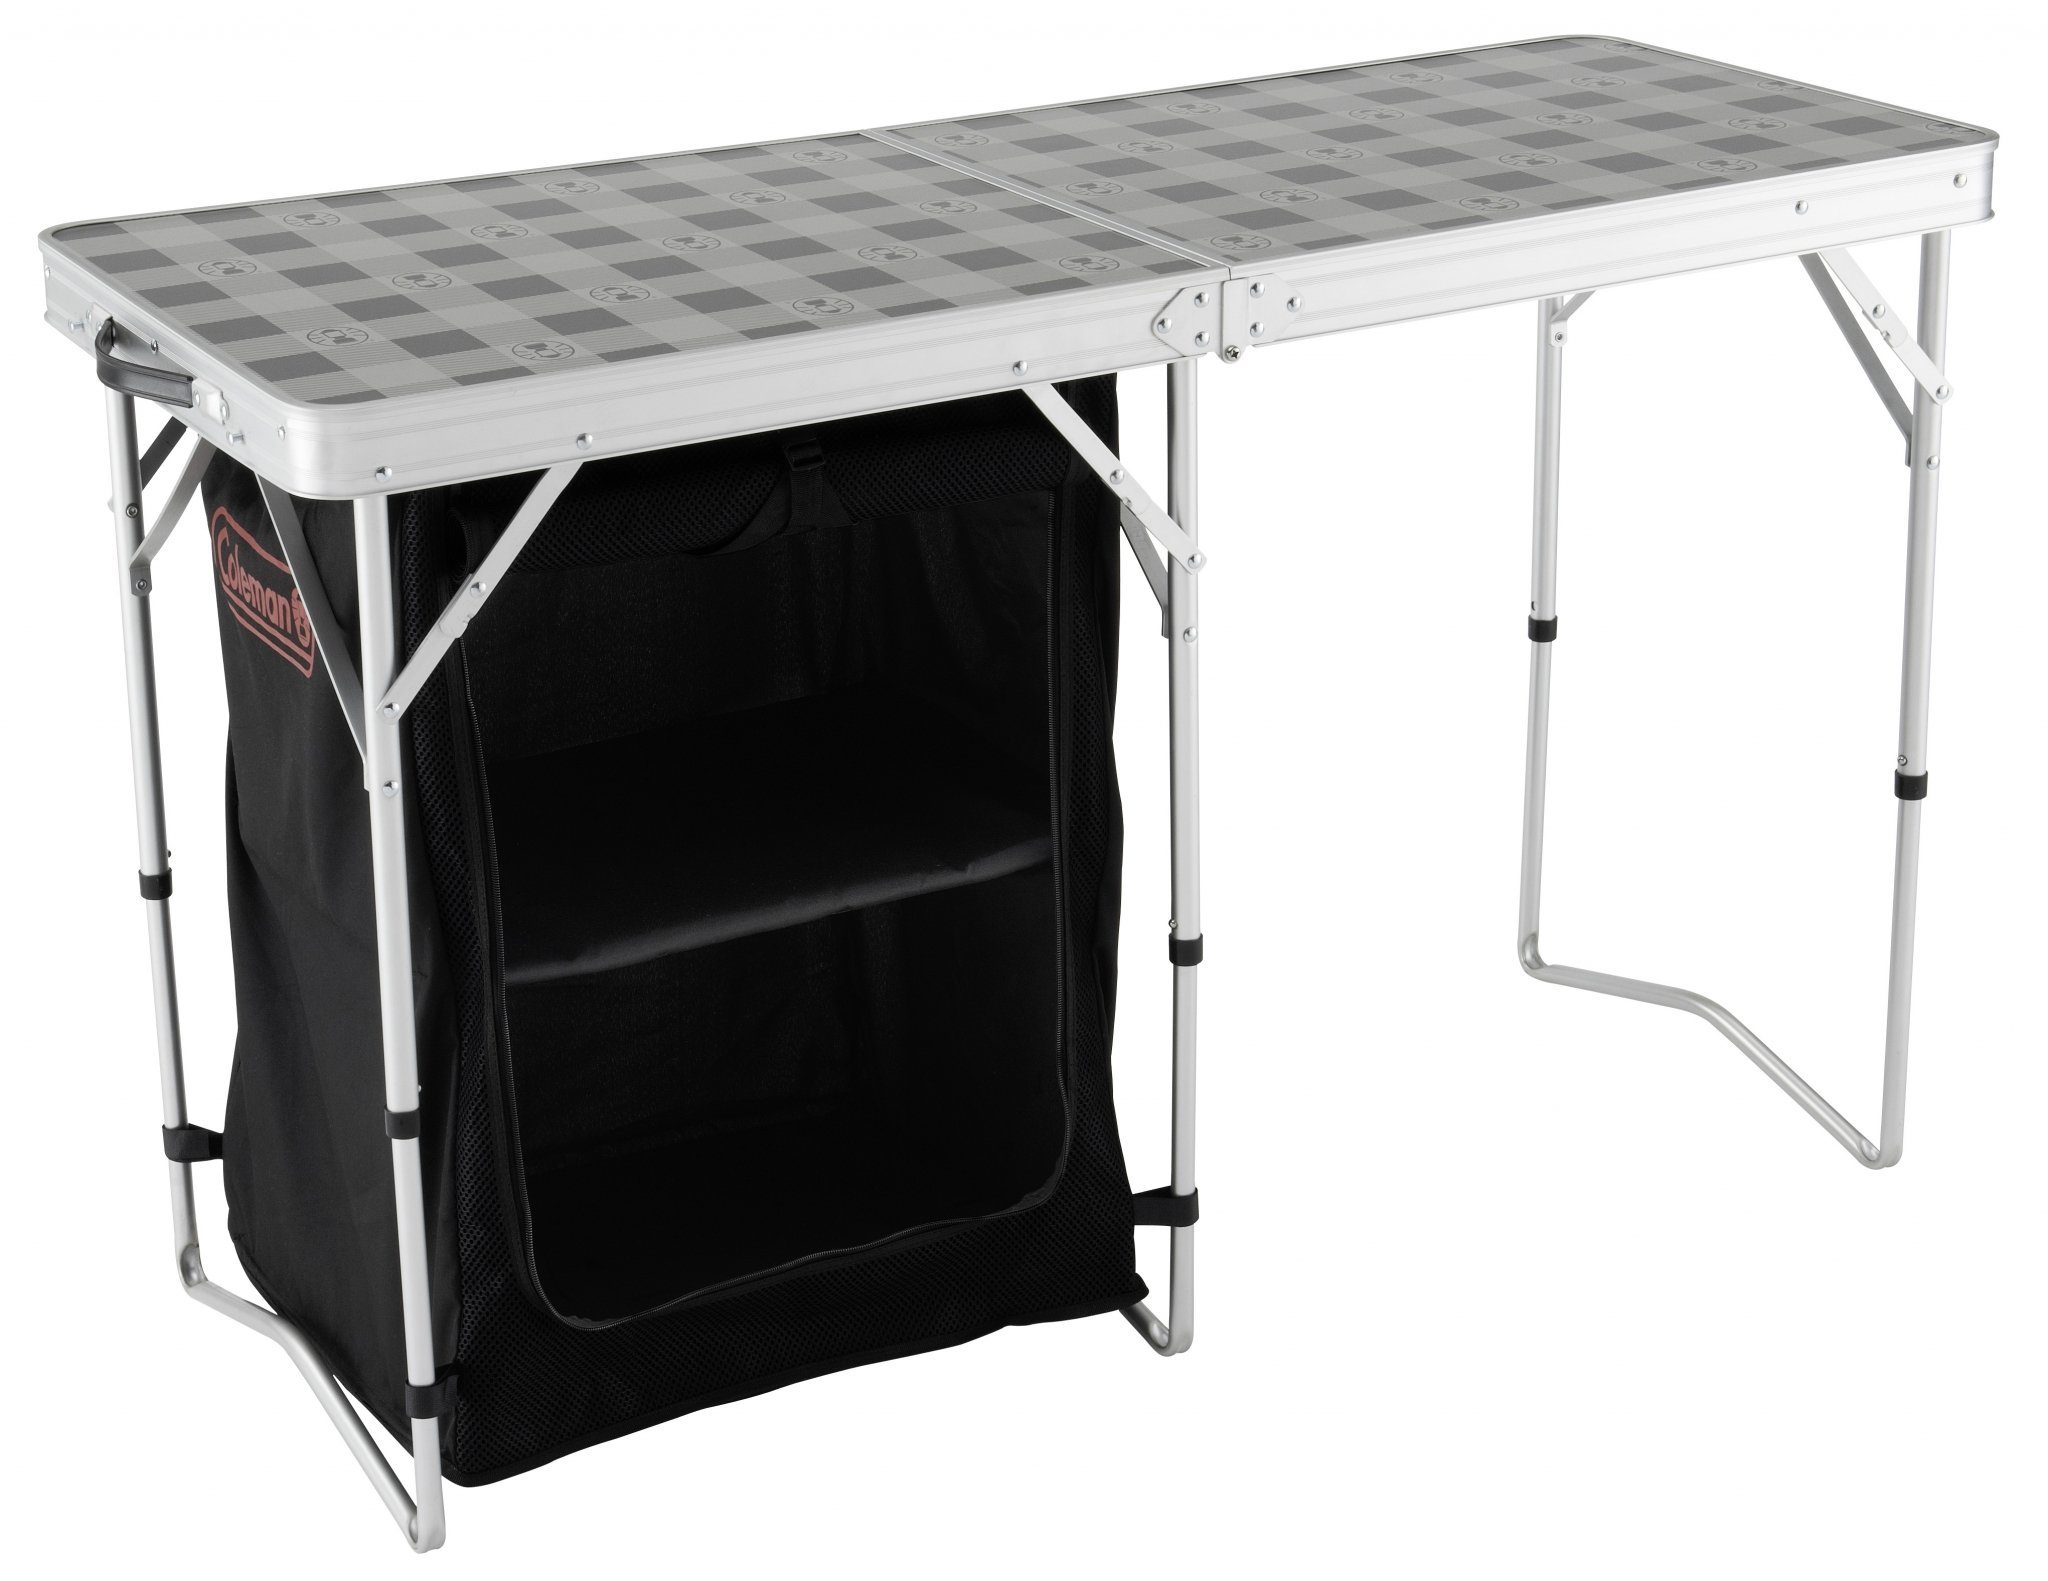 COLEMAN Camping Tisch »Coleman 2 in 1 Camping Table«